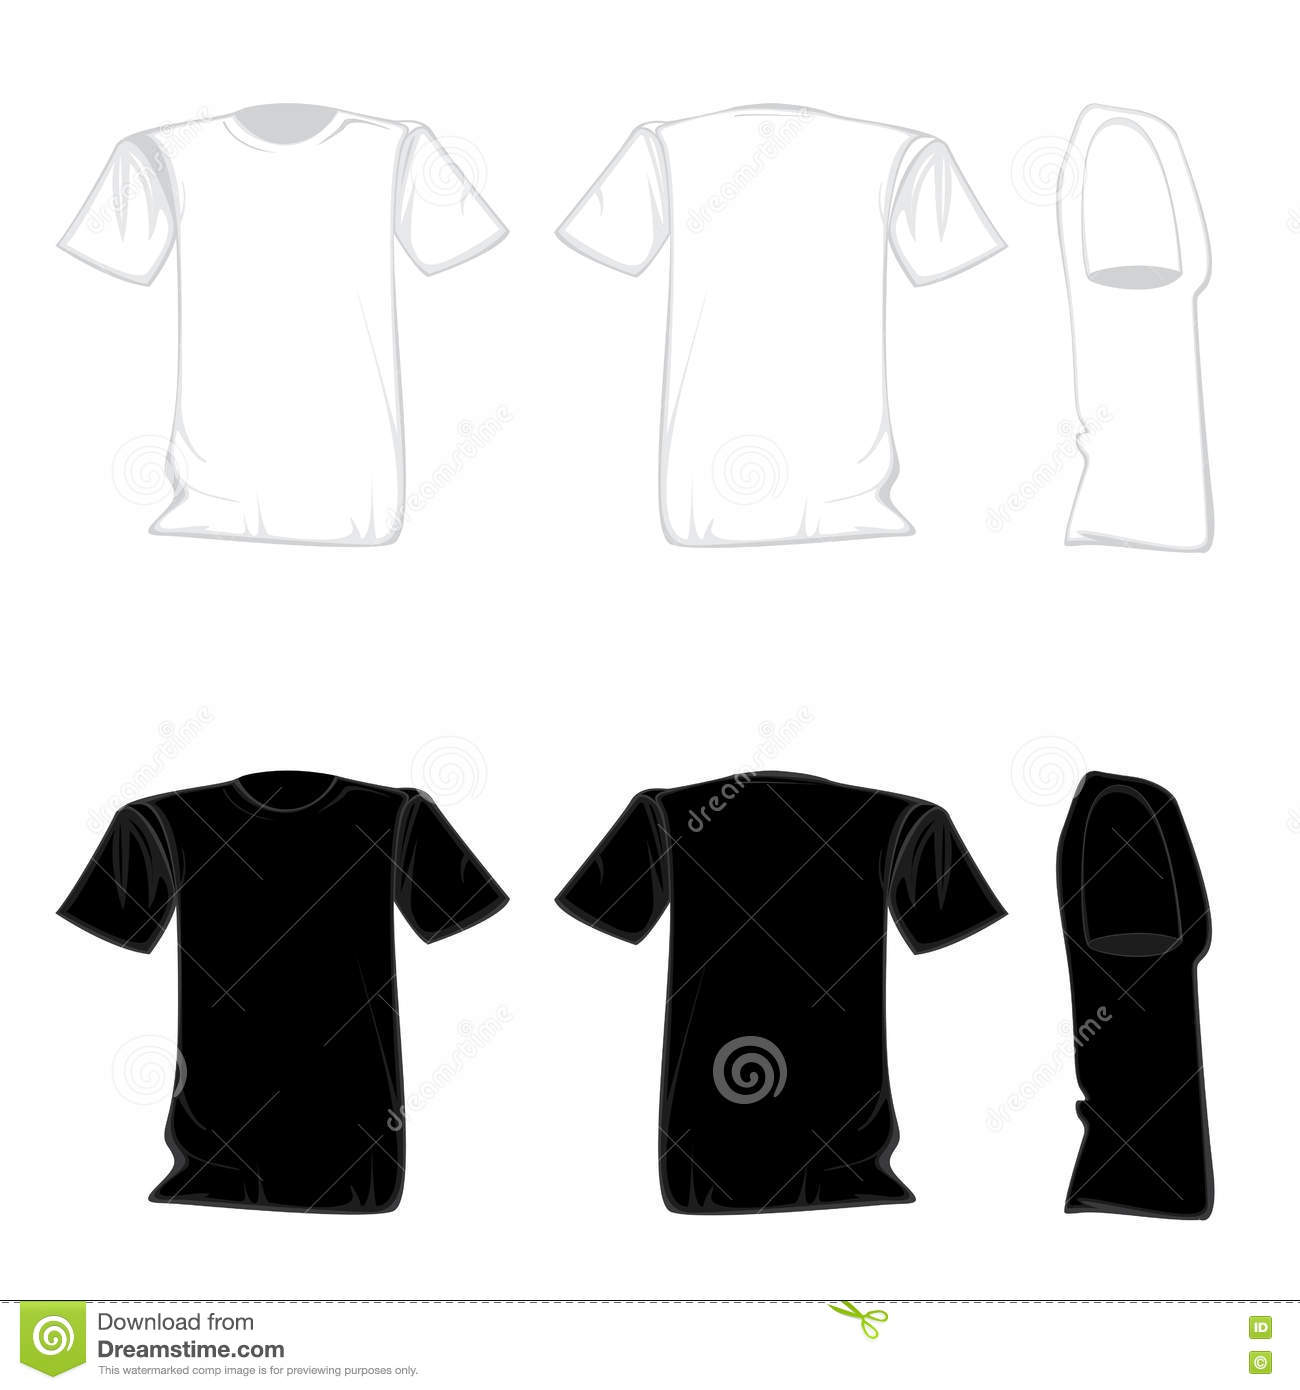 White t shirt front and back template - T Shirt Template Design Set Shirt For Front With Back And Side View